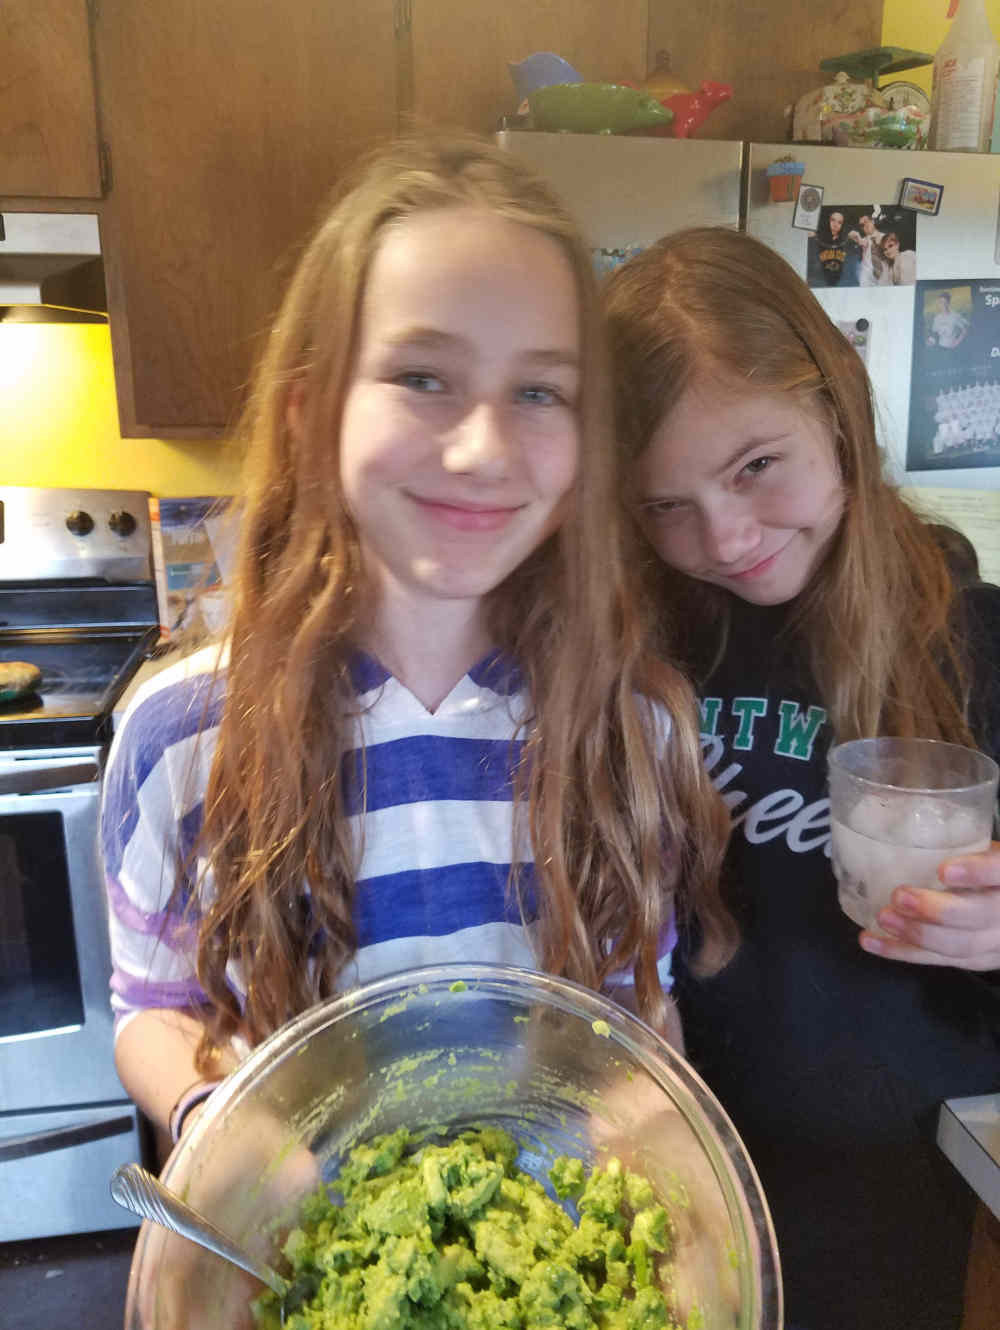 Guacamole recipe by teens by The Healthy RD